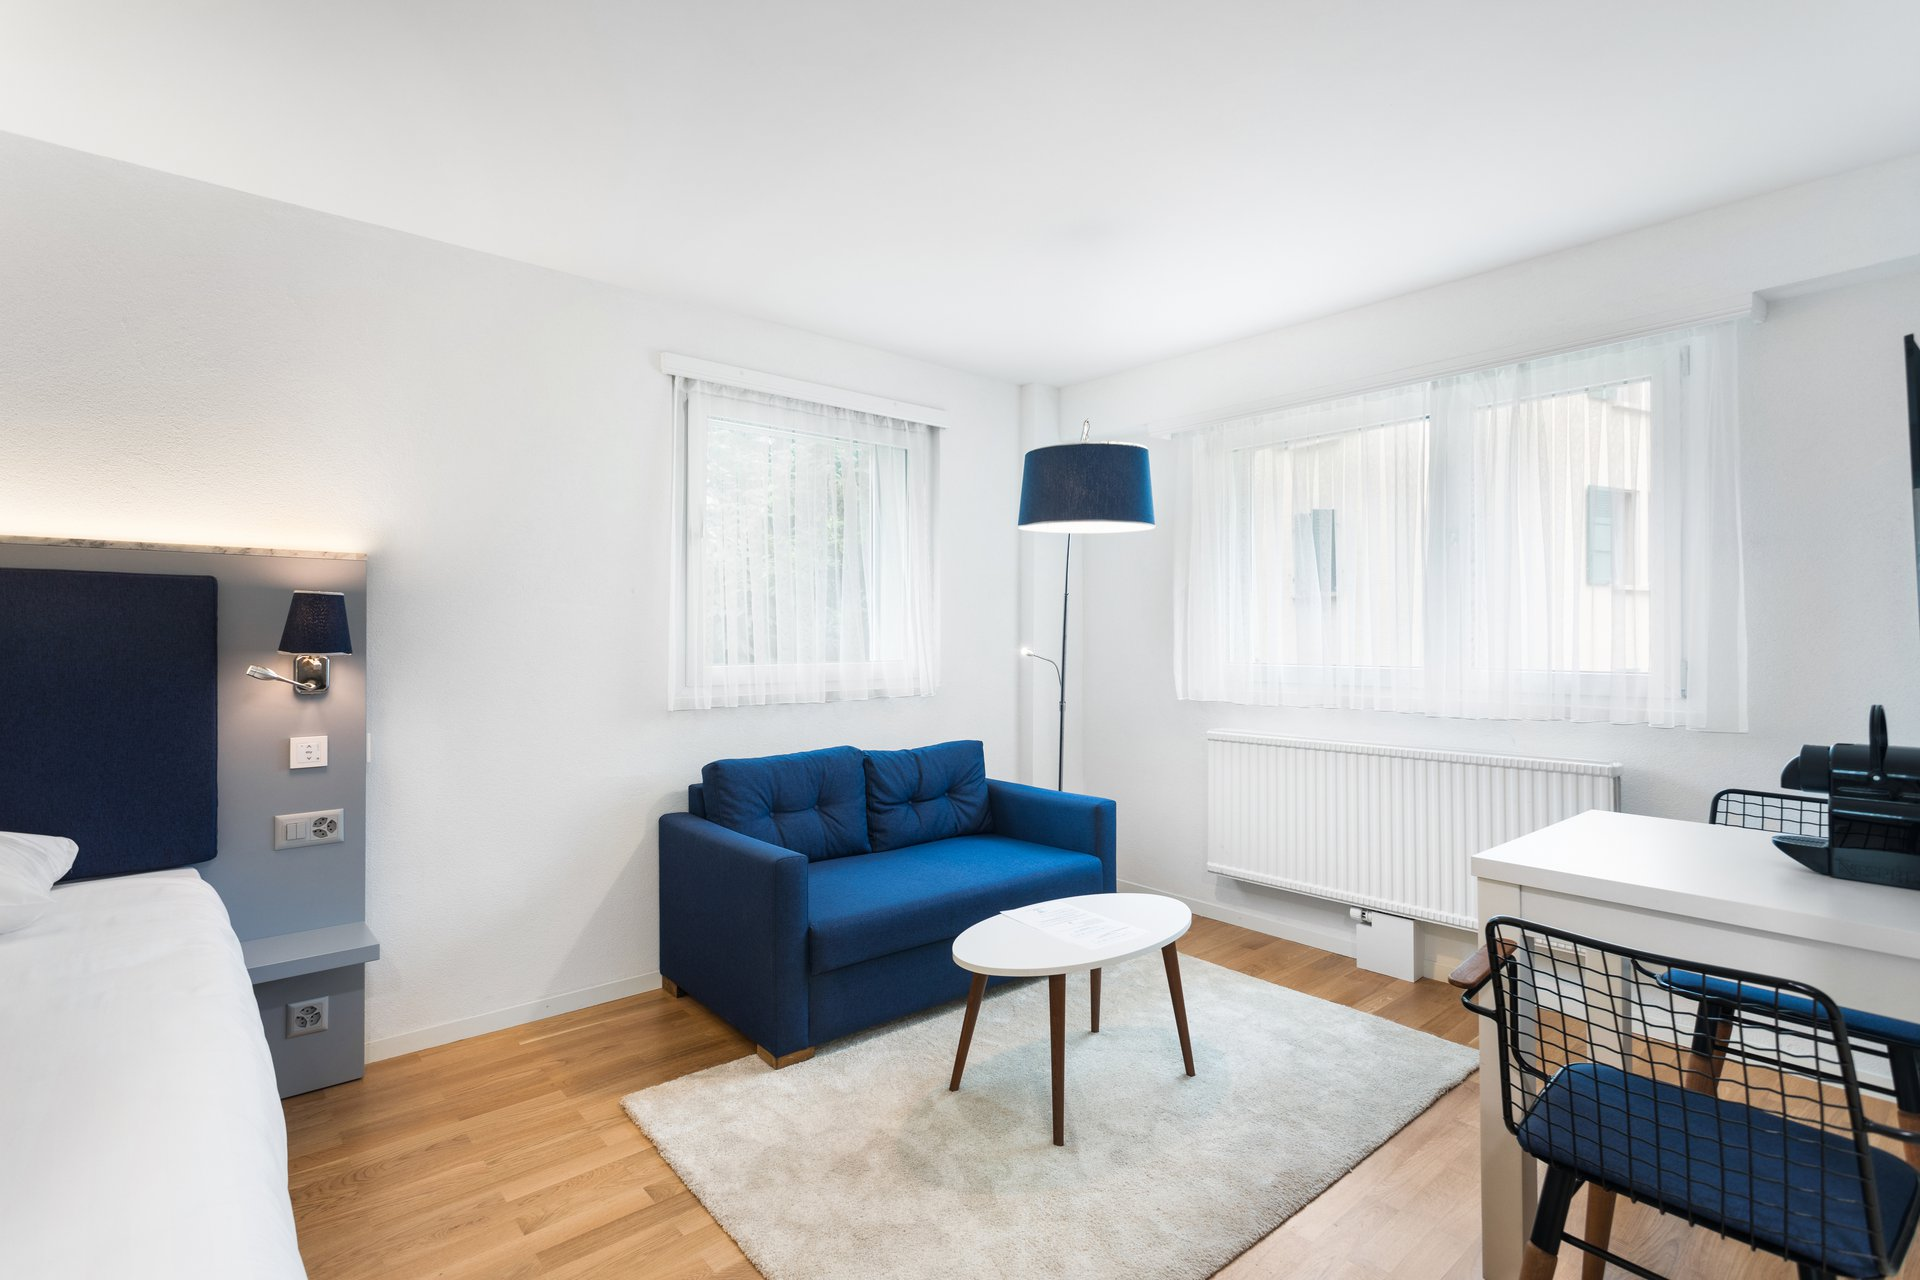 Pleasant studio apartment equipped and furnished, practical and modern in a newly renovated building in compliance with envir